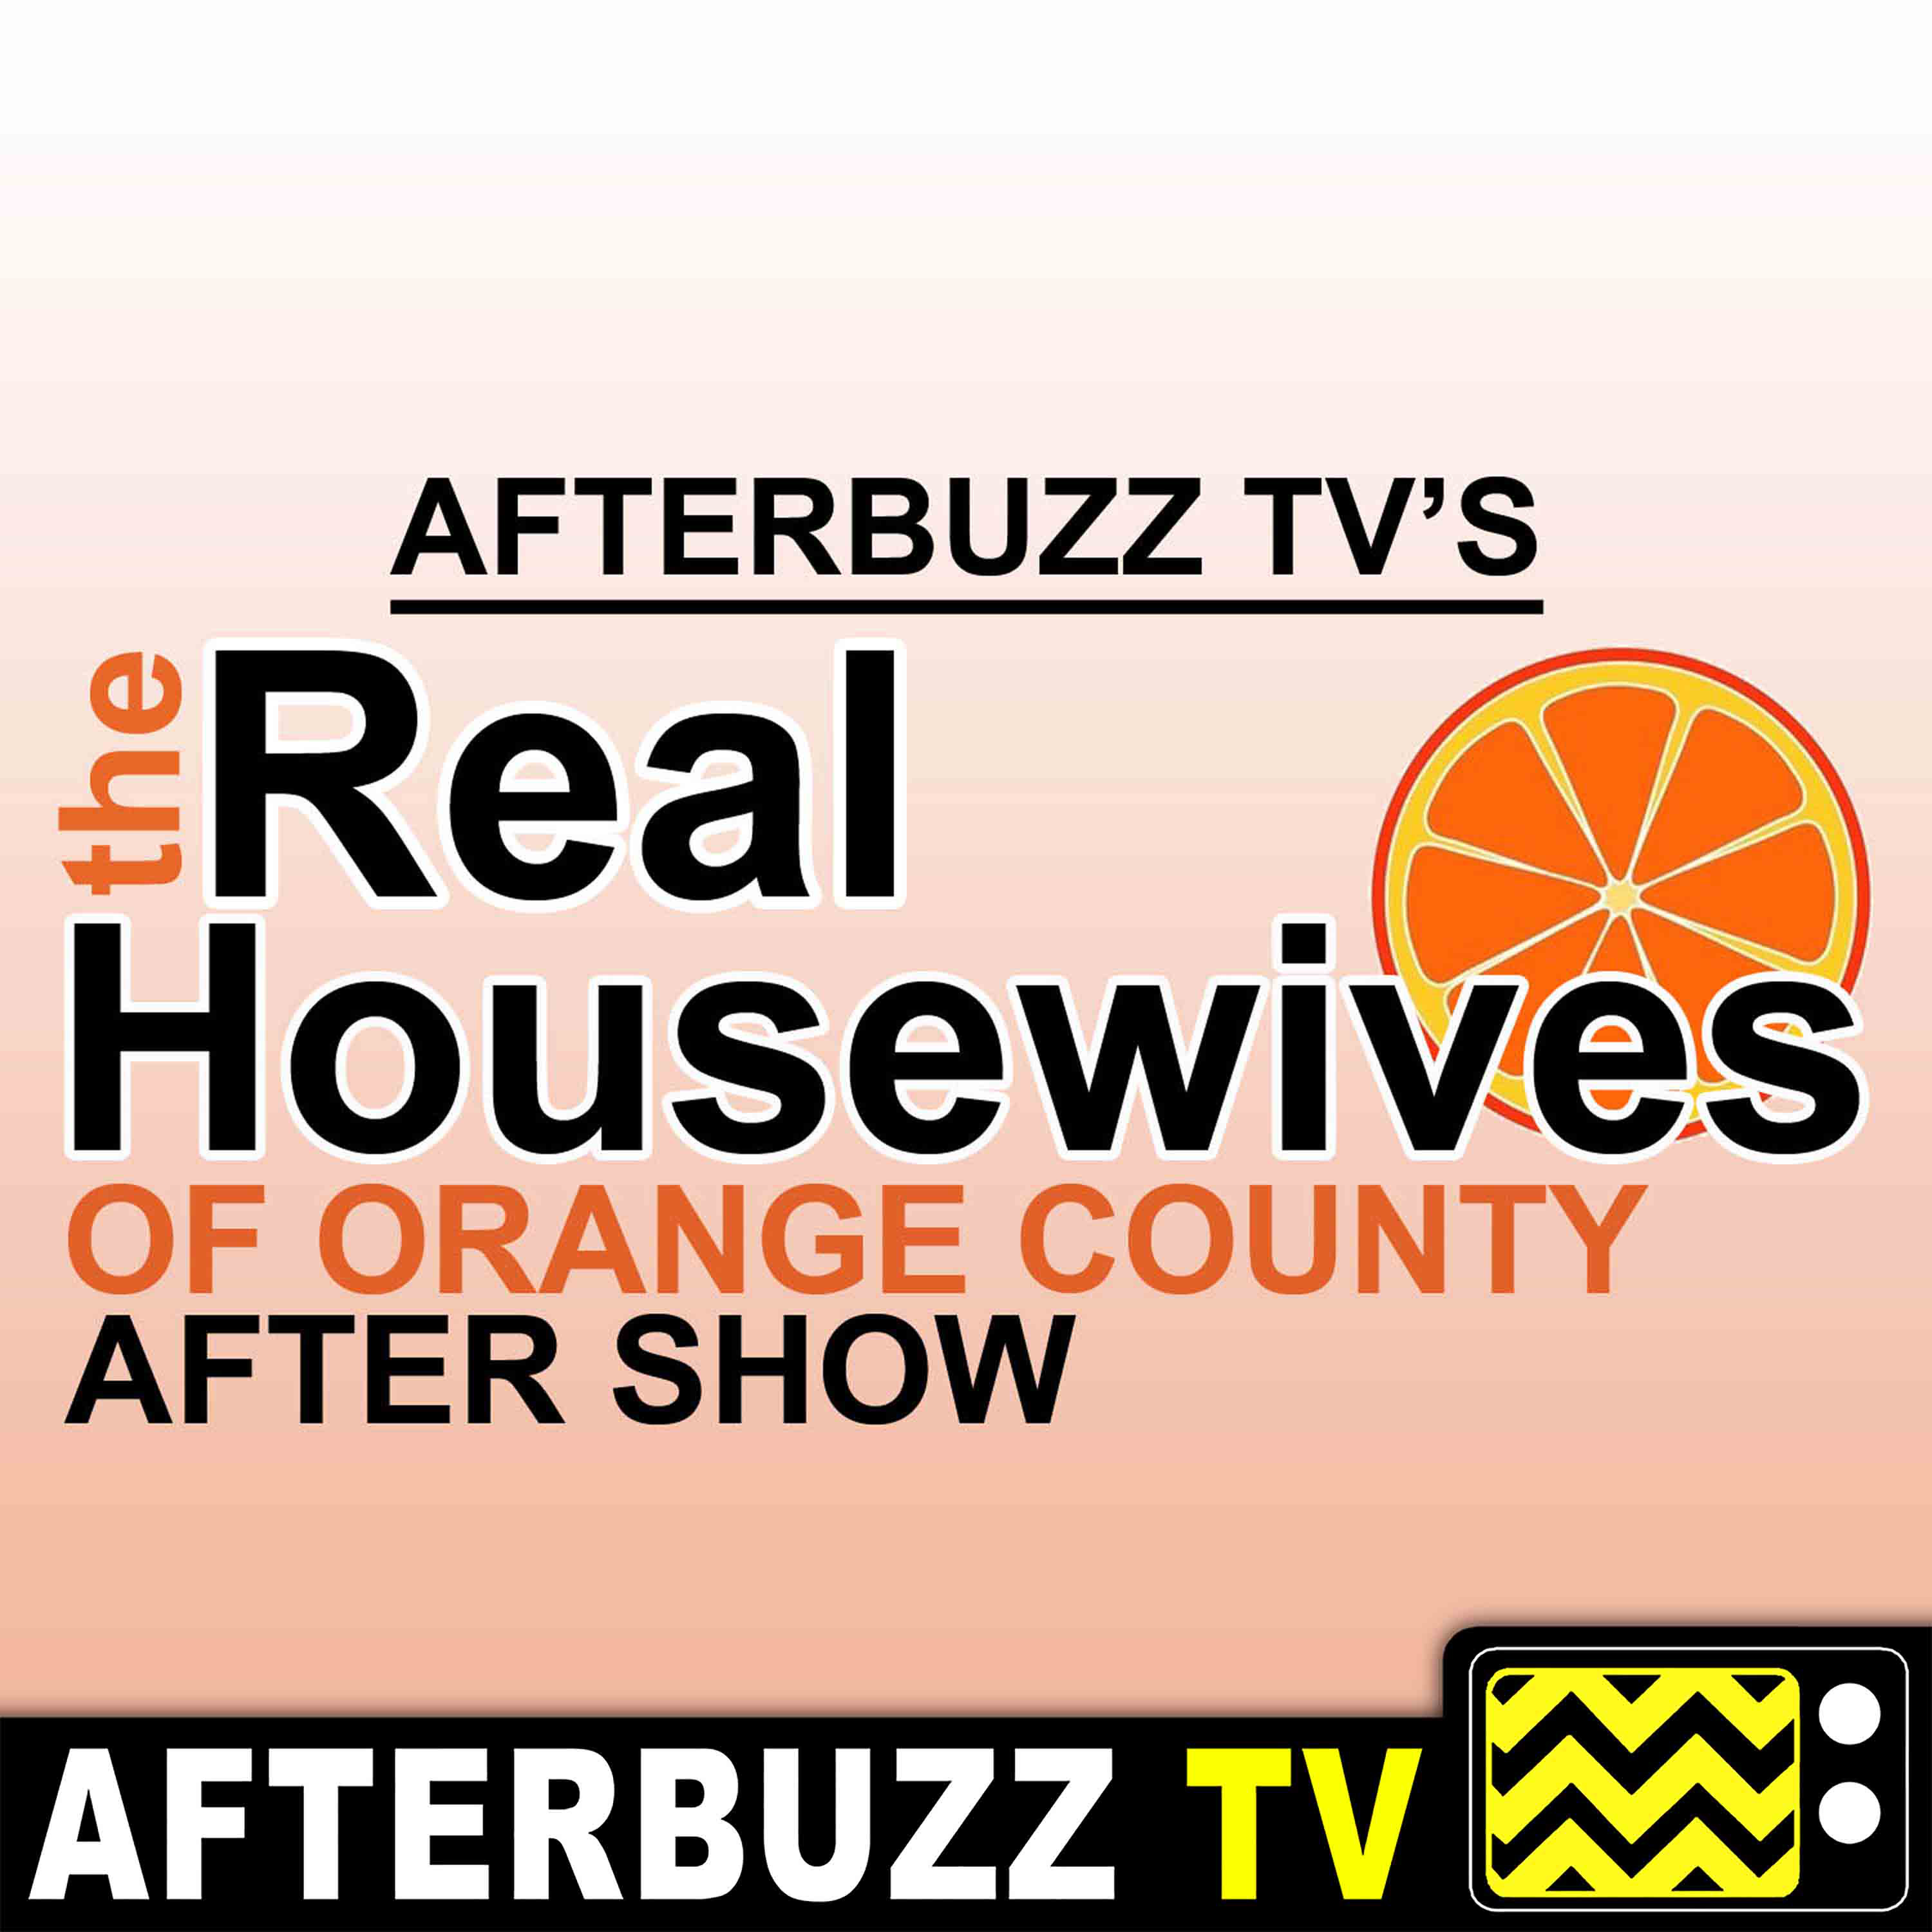 Real Housewives of Orange County Reviews and After Show